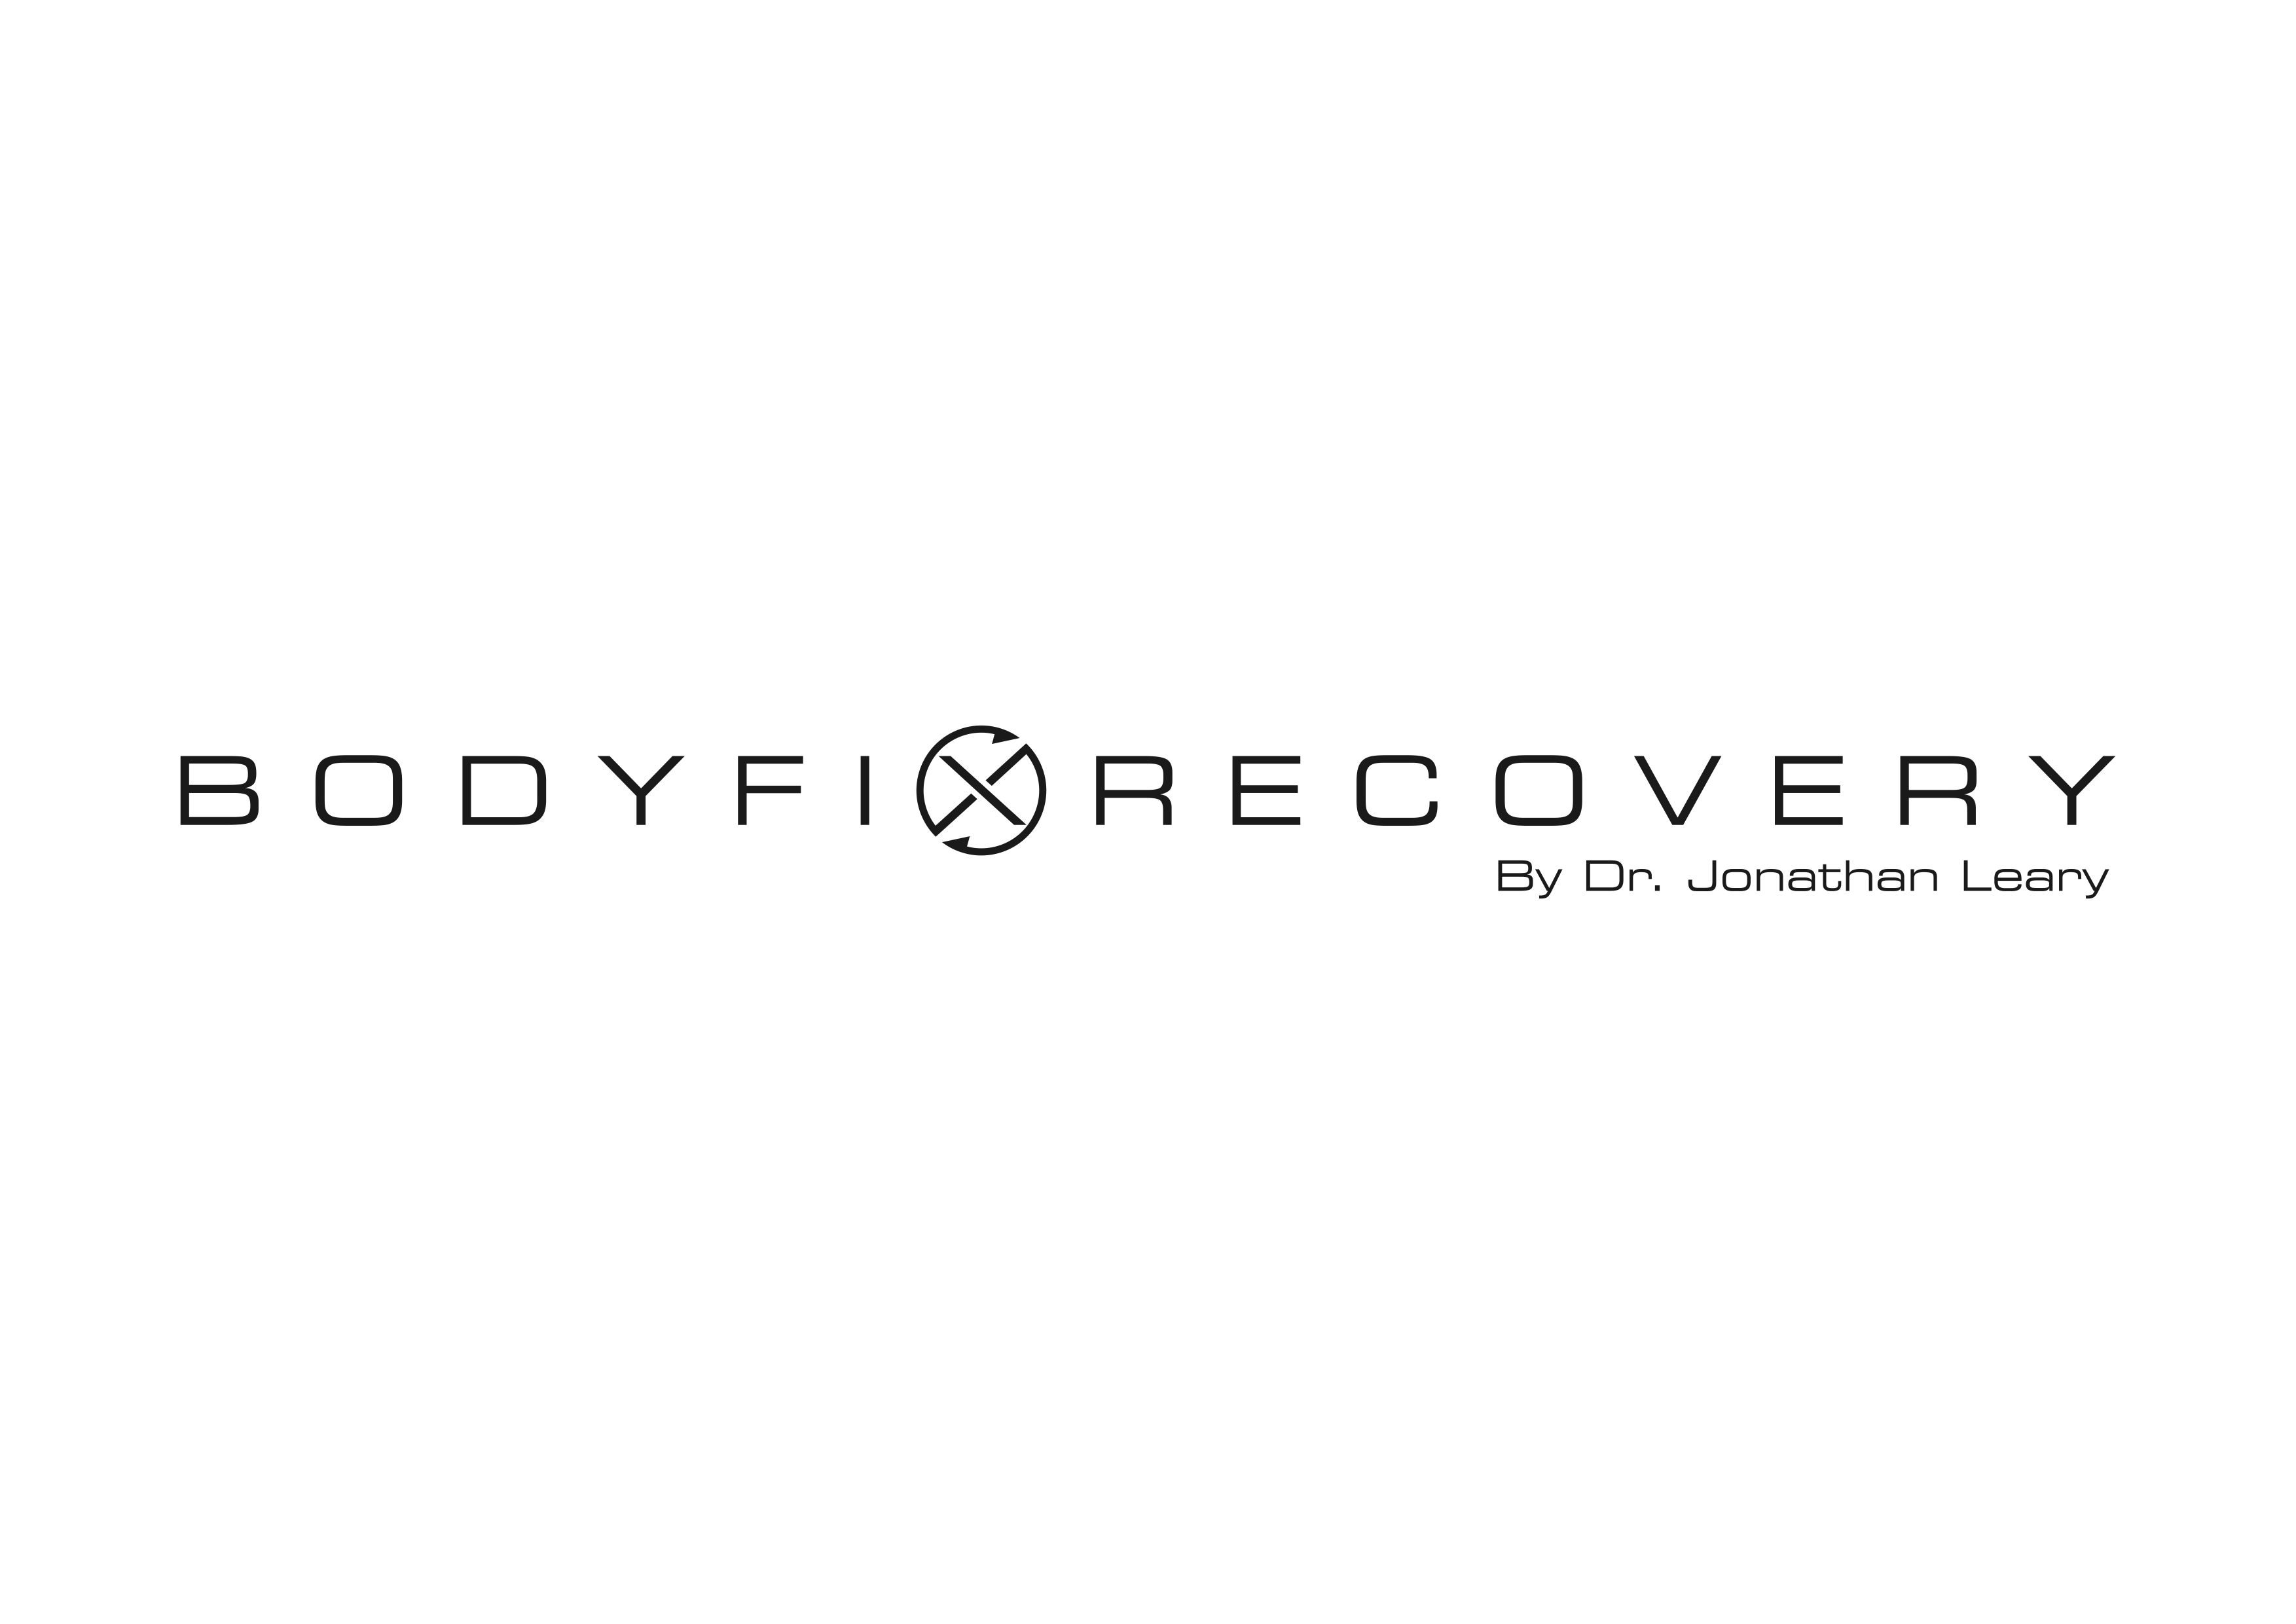 Create an abstract, minimal logo for a new fitness equipment line!